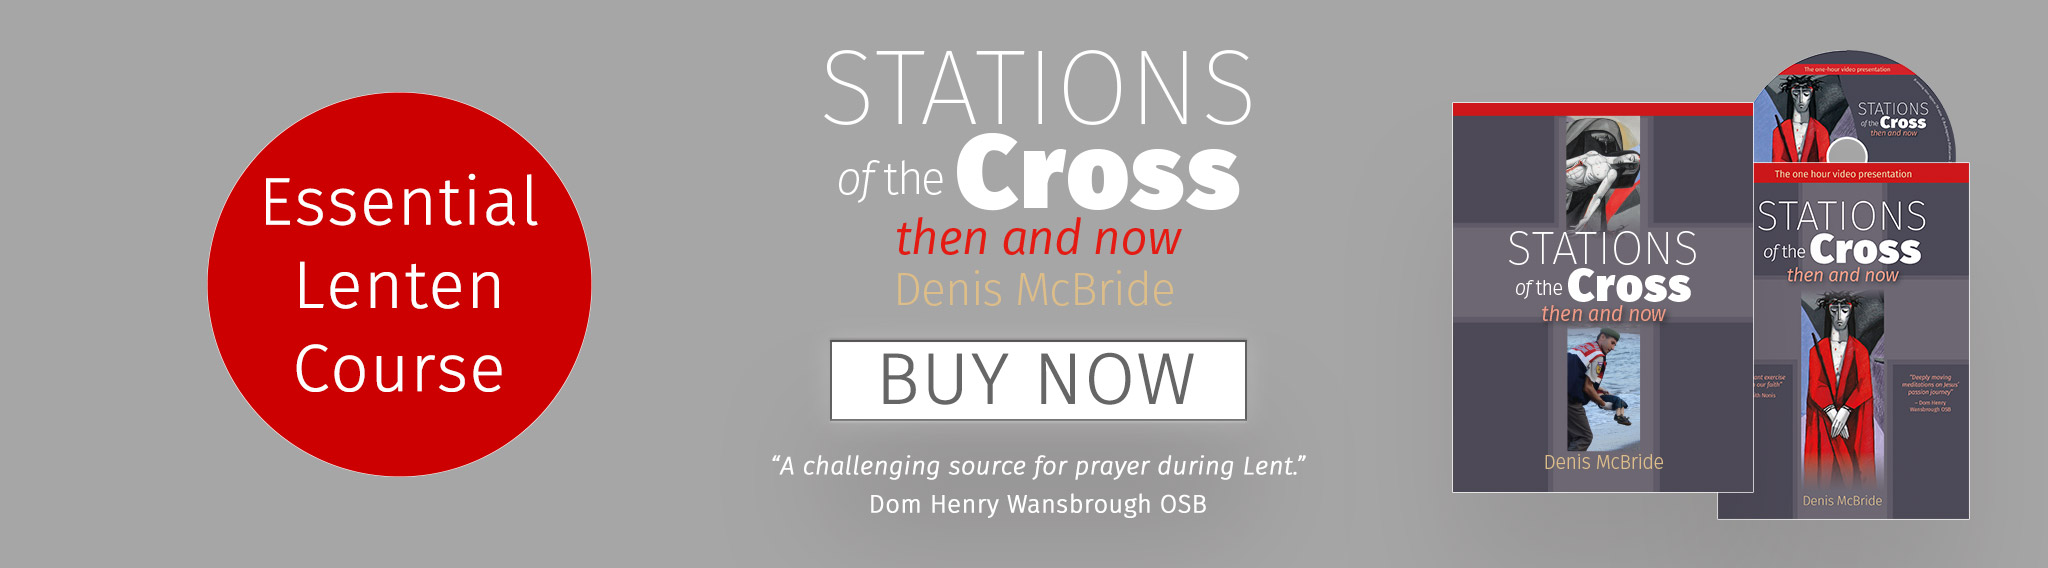 Stations of the Cross then and now